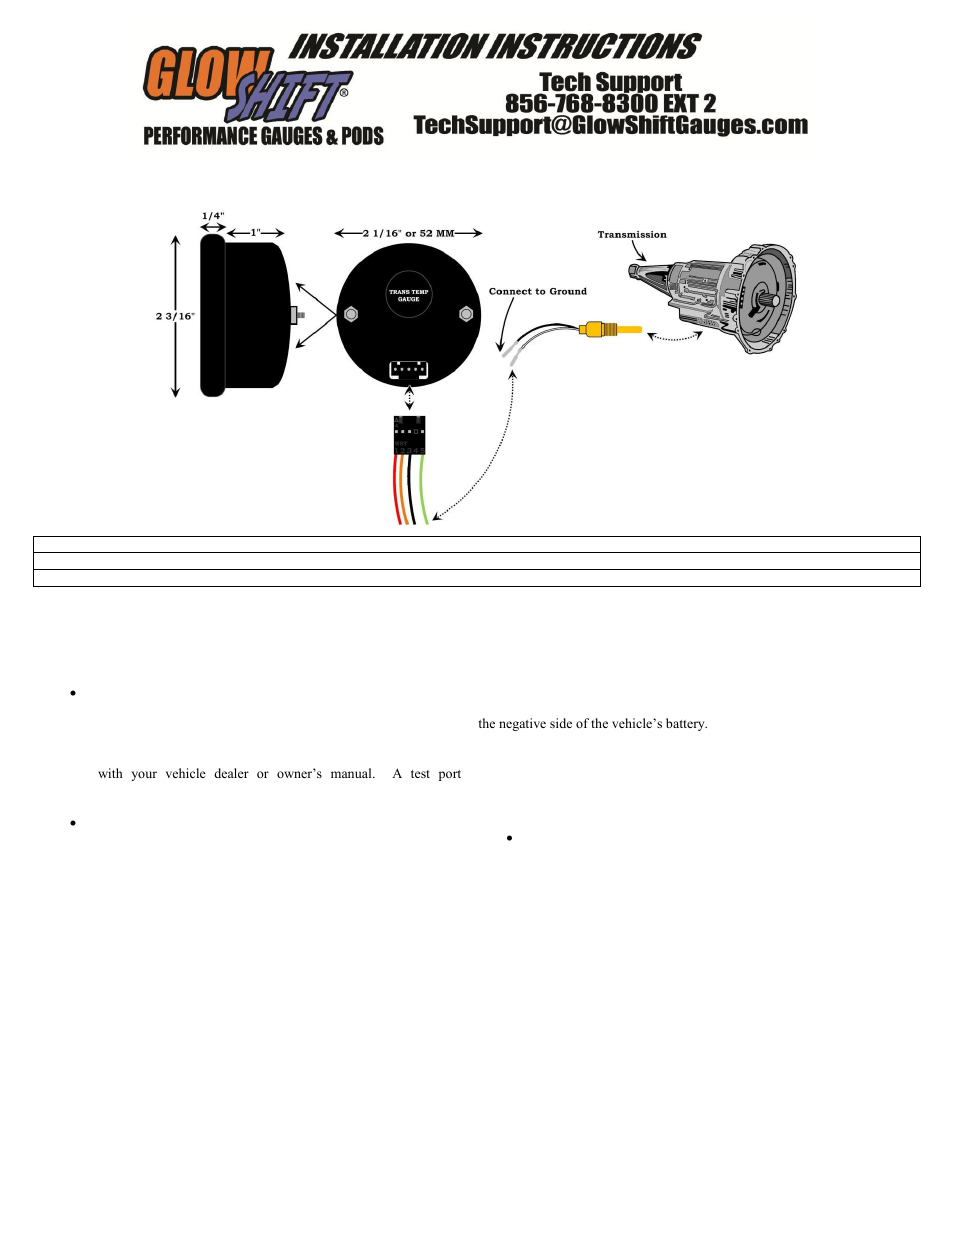 glowshift digital series celsius transmission temperature gauge user manual | 3 pages | also for ... stewart warner temp gauge wiring diagram tran temp gauge wiring diagram